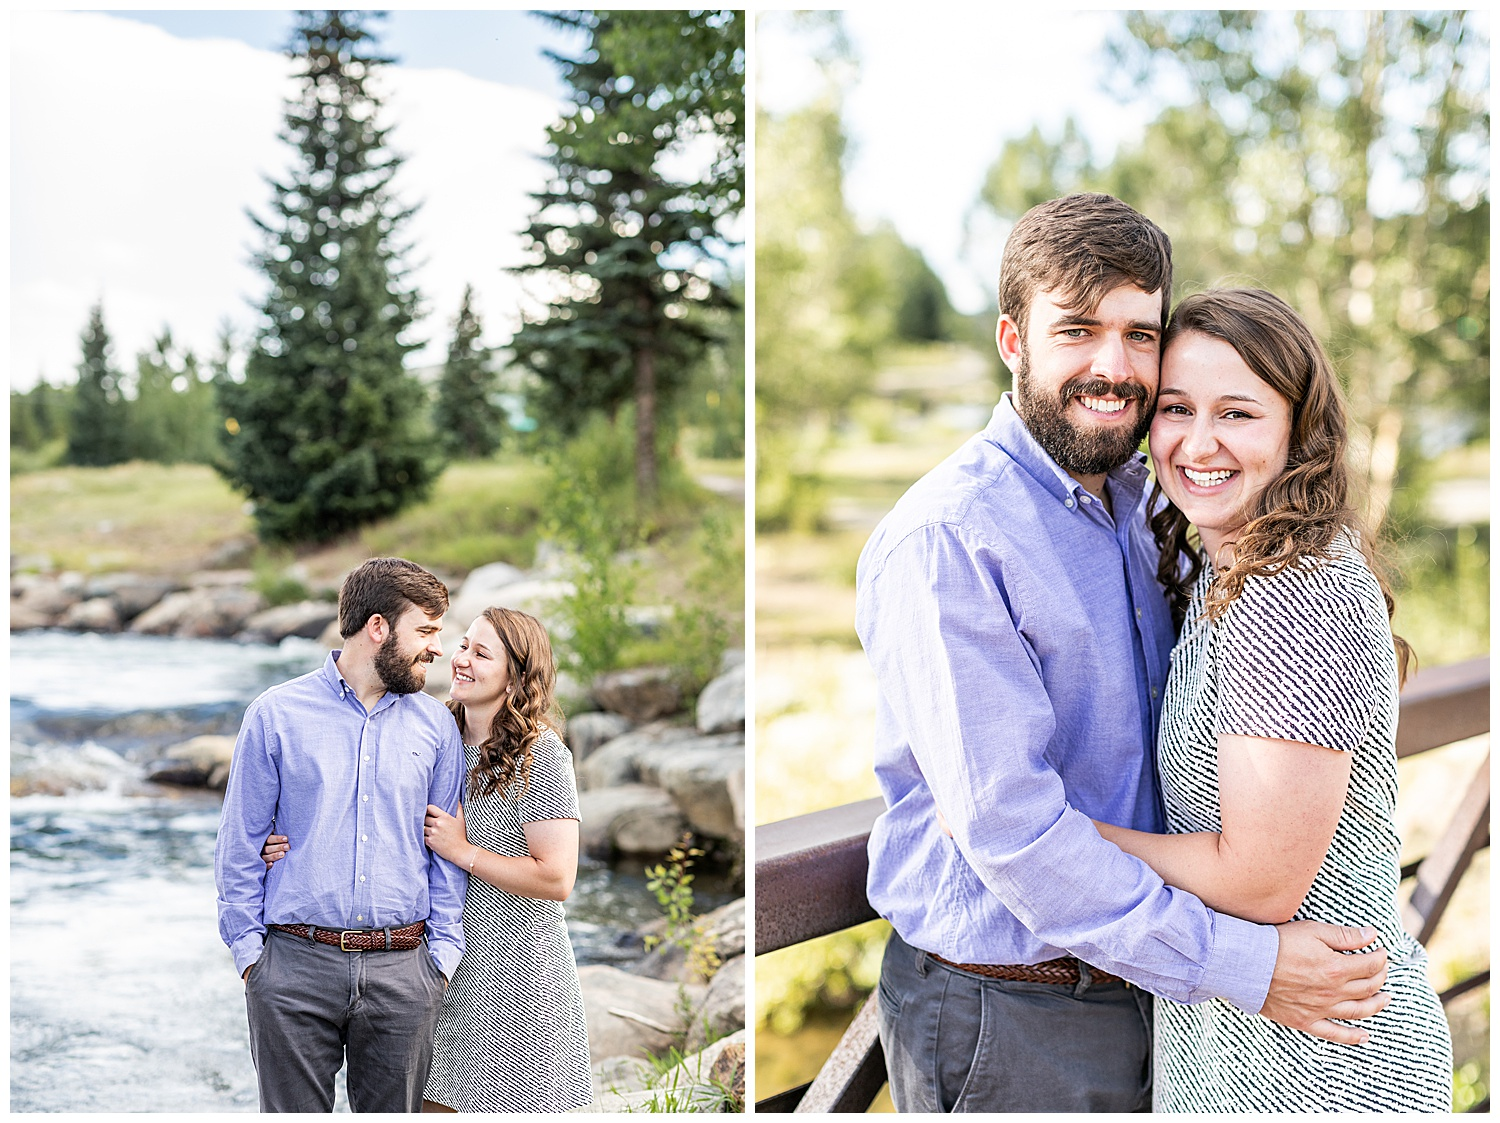 Molly + Ryan Breckenridge Destination Engagement Session Living Radiant Photography_0001.jpg